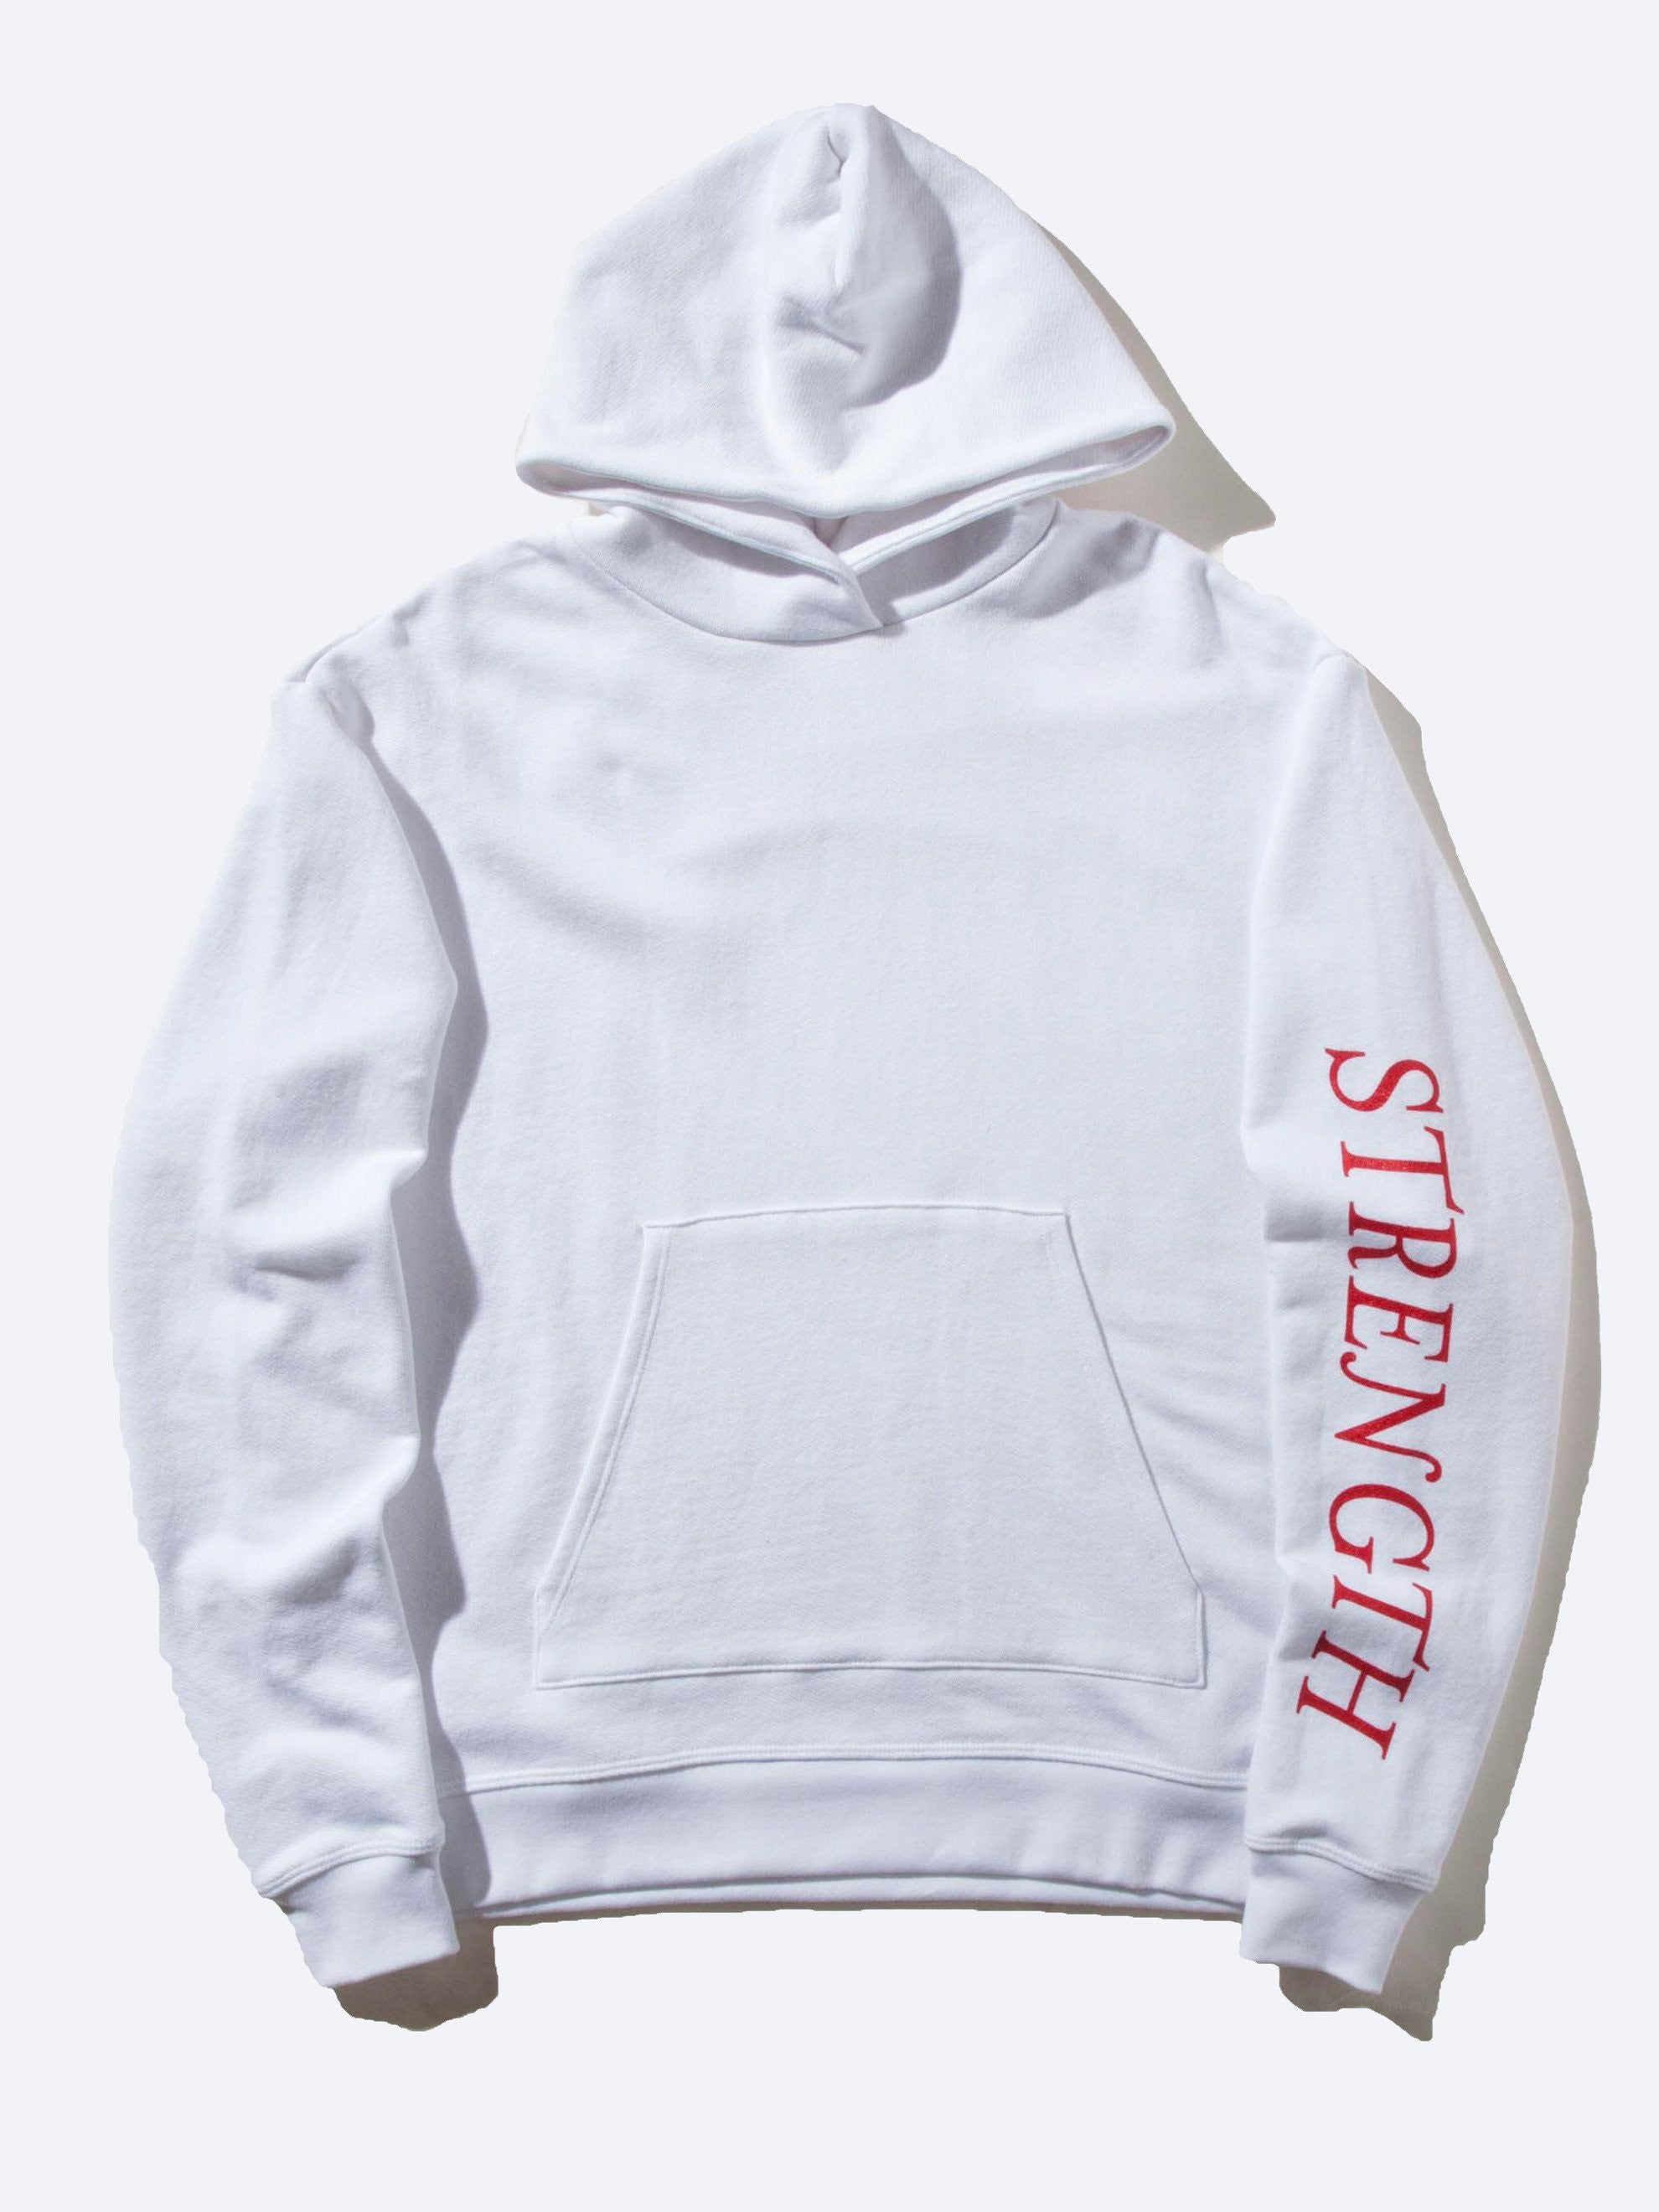 White Oversized Cropped Hooded Sweatshirt (TOURNAMENT) 1